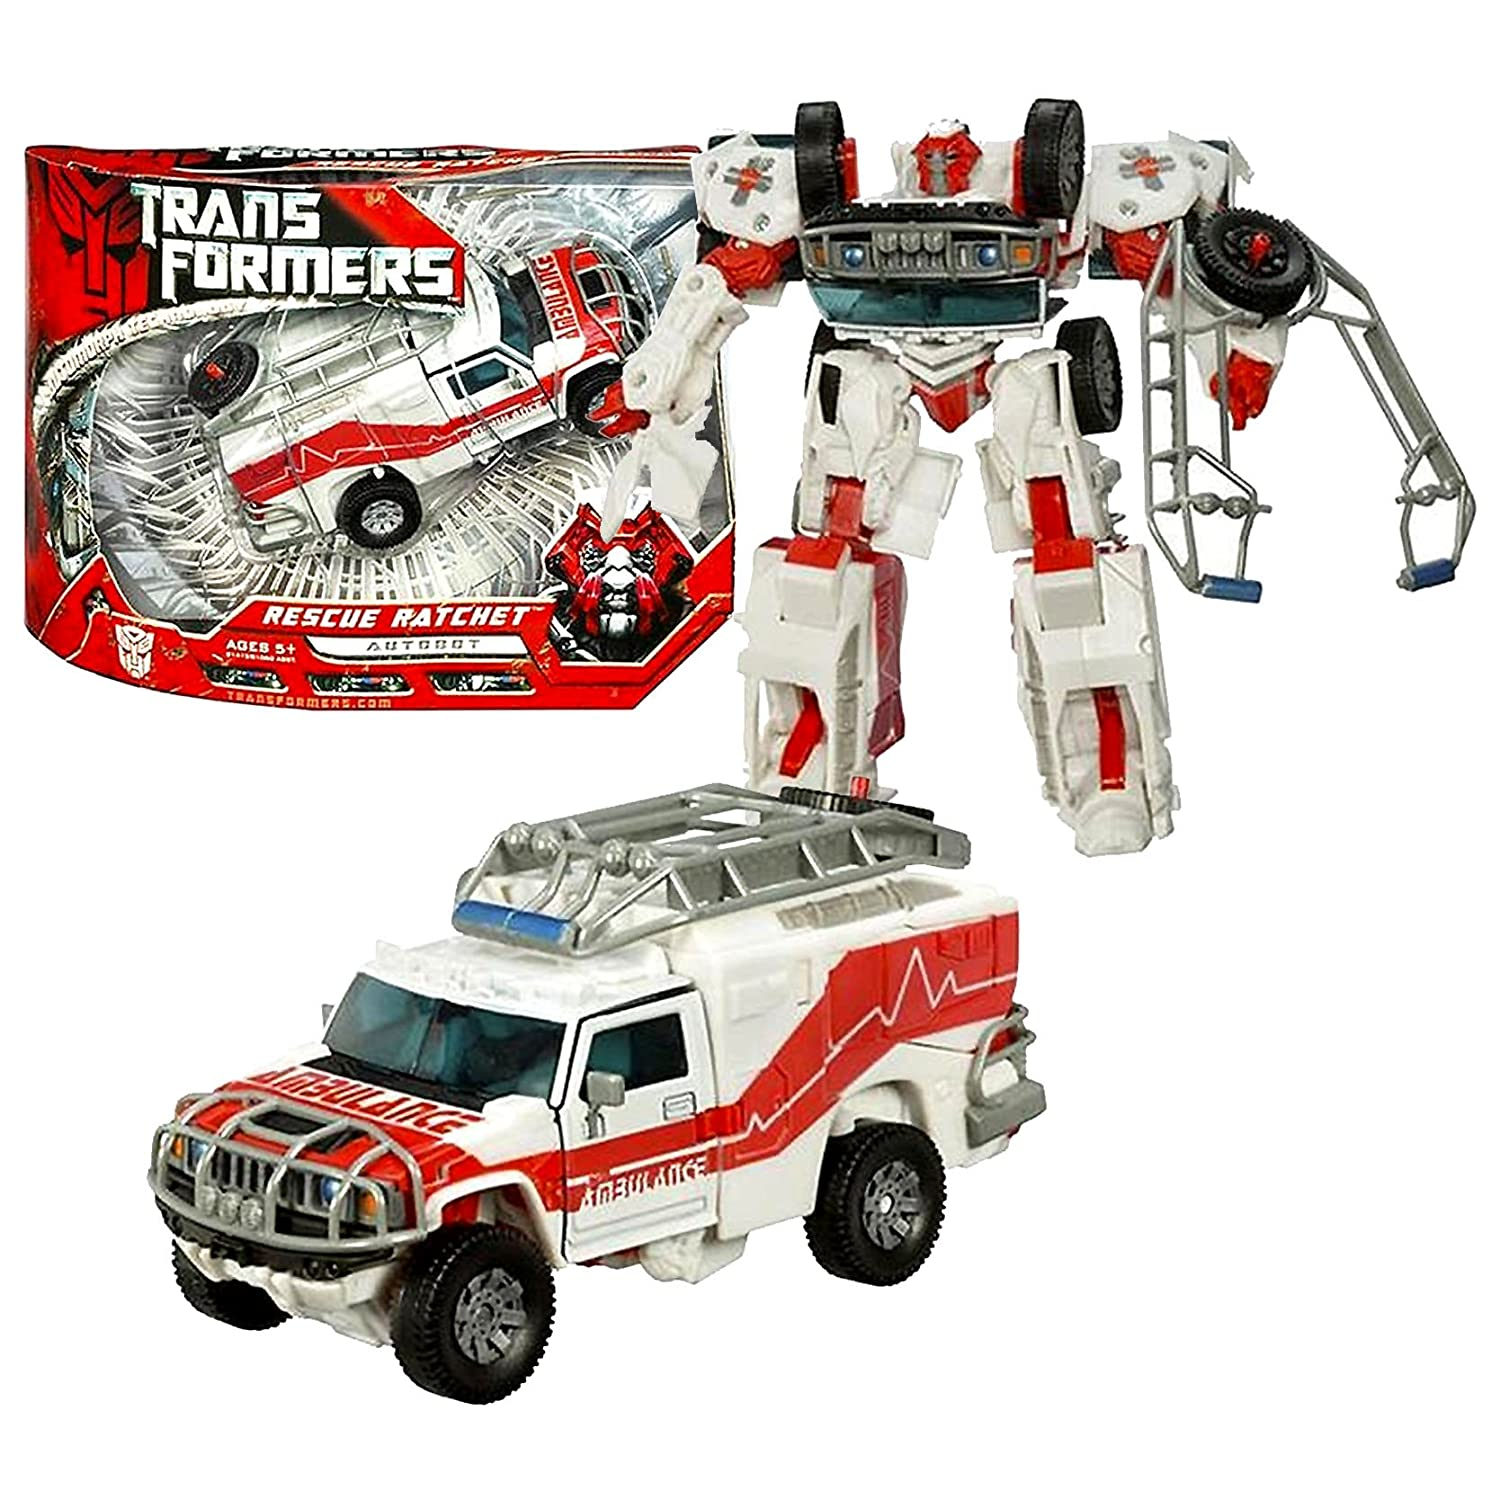 Hasbro Year 2007 Transformers Movie Series 1 Voyager Class 7 Inch Tall Robot Action Figure - Autobot RESCUE RATCHET with Automorph Forearm Cannon and Hidden Axe (Vehicle Mode: Hummer H2 Ambulance) доктор перец пластырь перцовый 10х18см обезболивающий